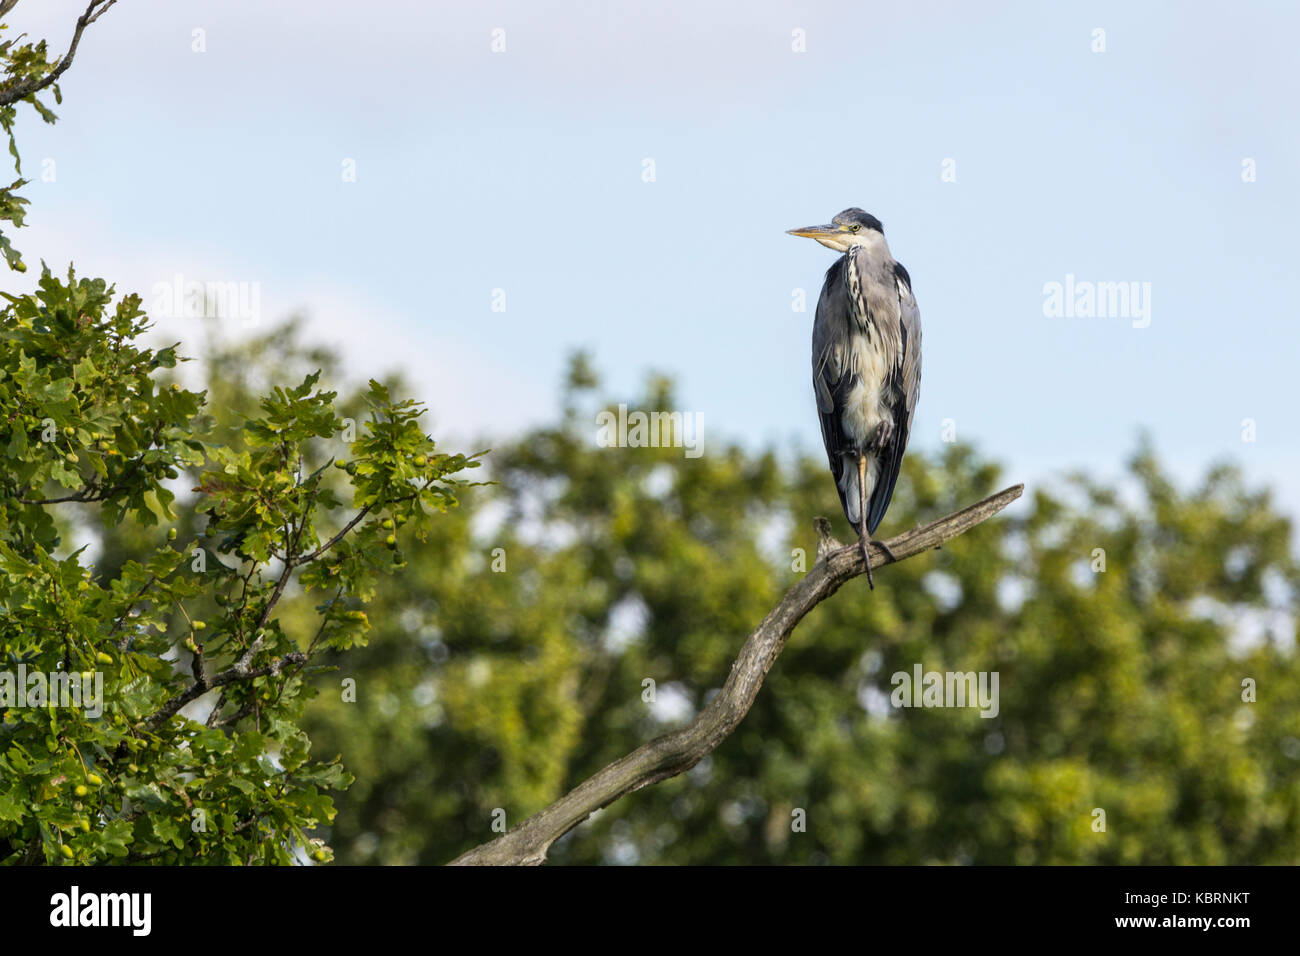 Grey heron perched on bare brach with blue sky background and tree tops. Ardea cinerea large water bird long neck - Stock Image